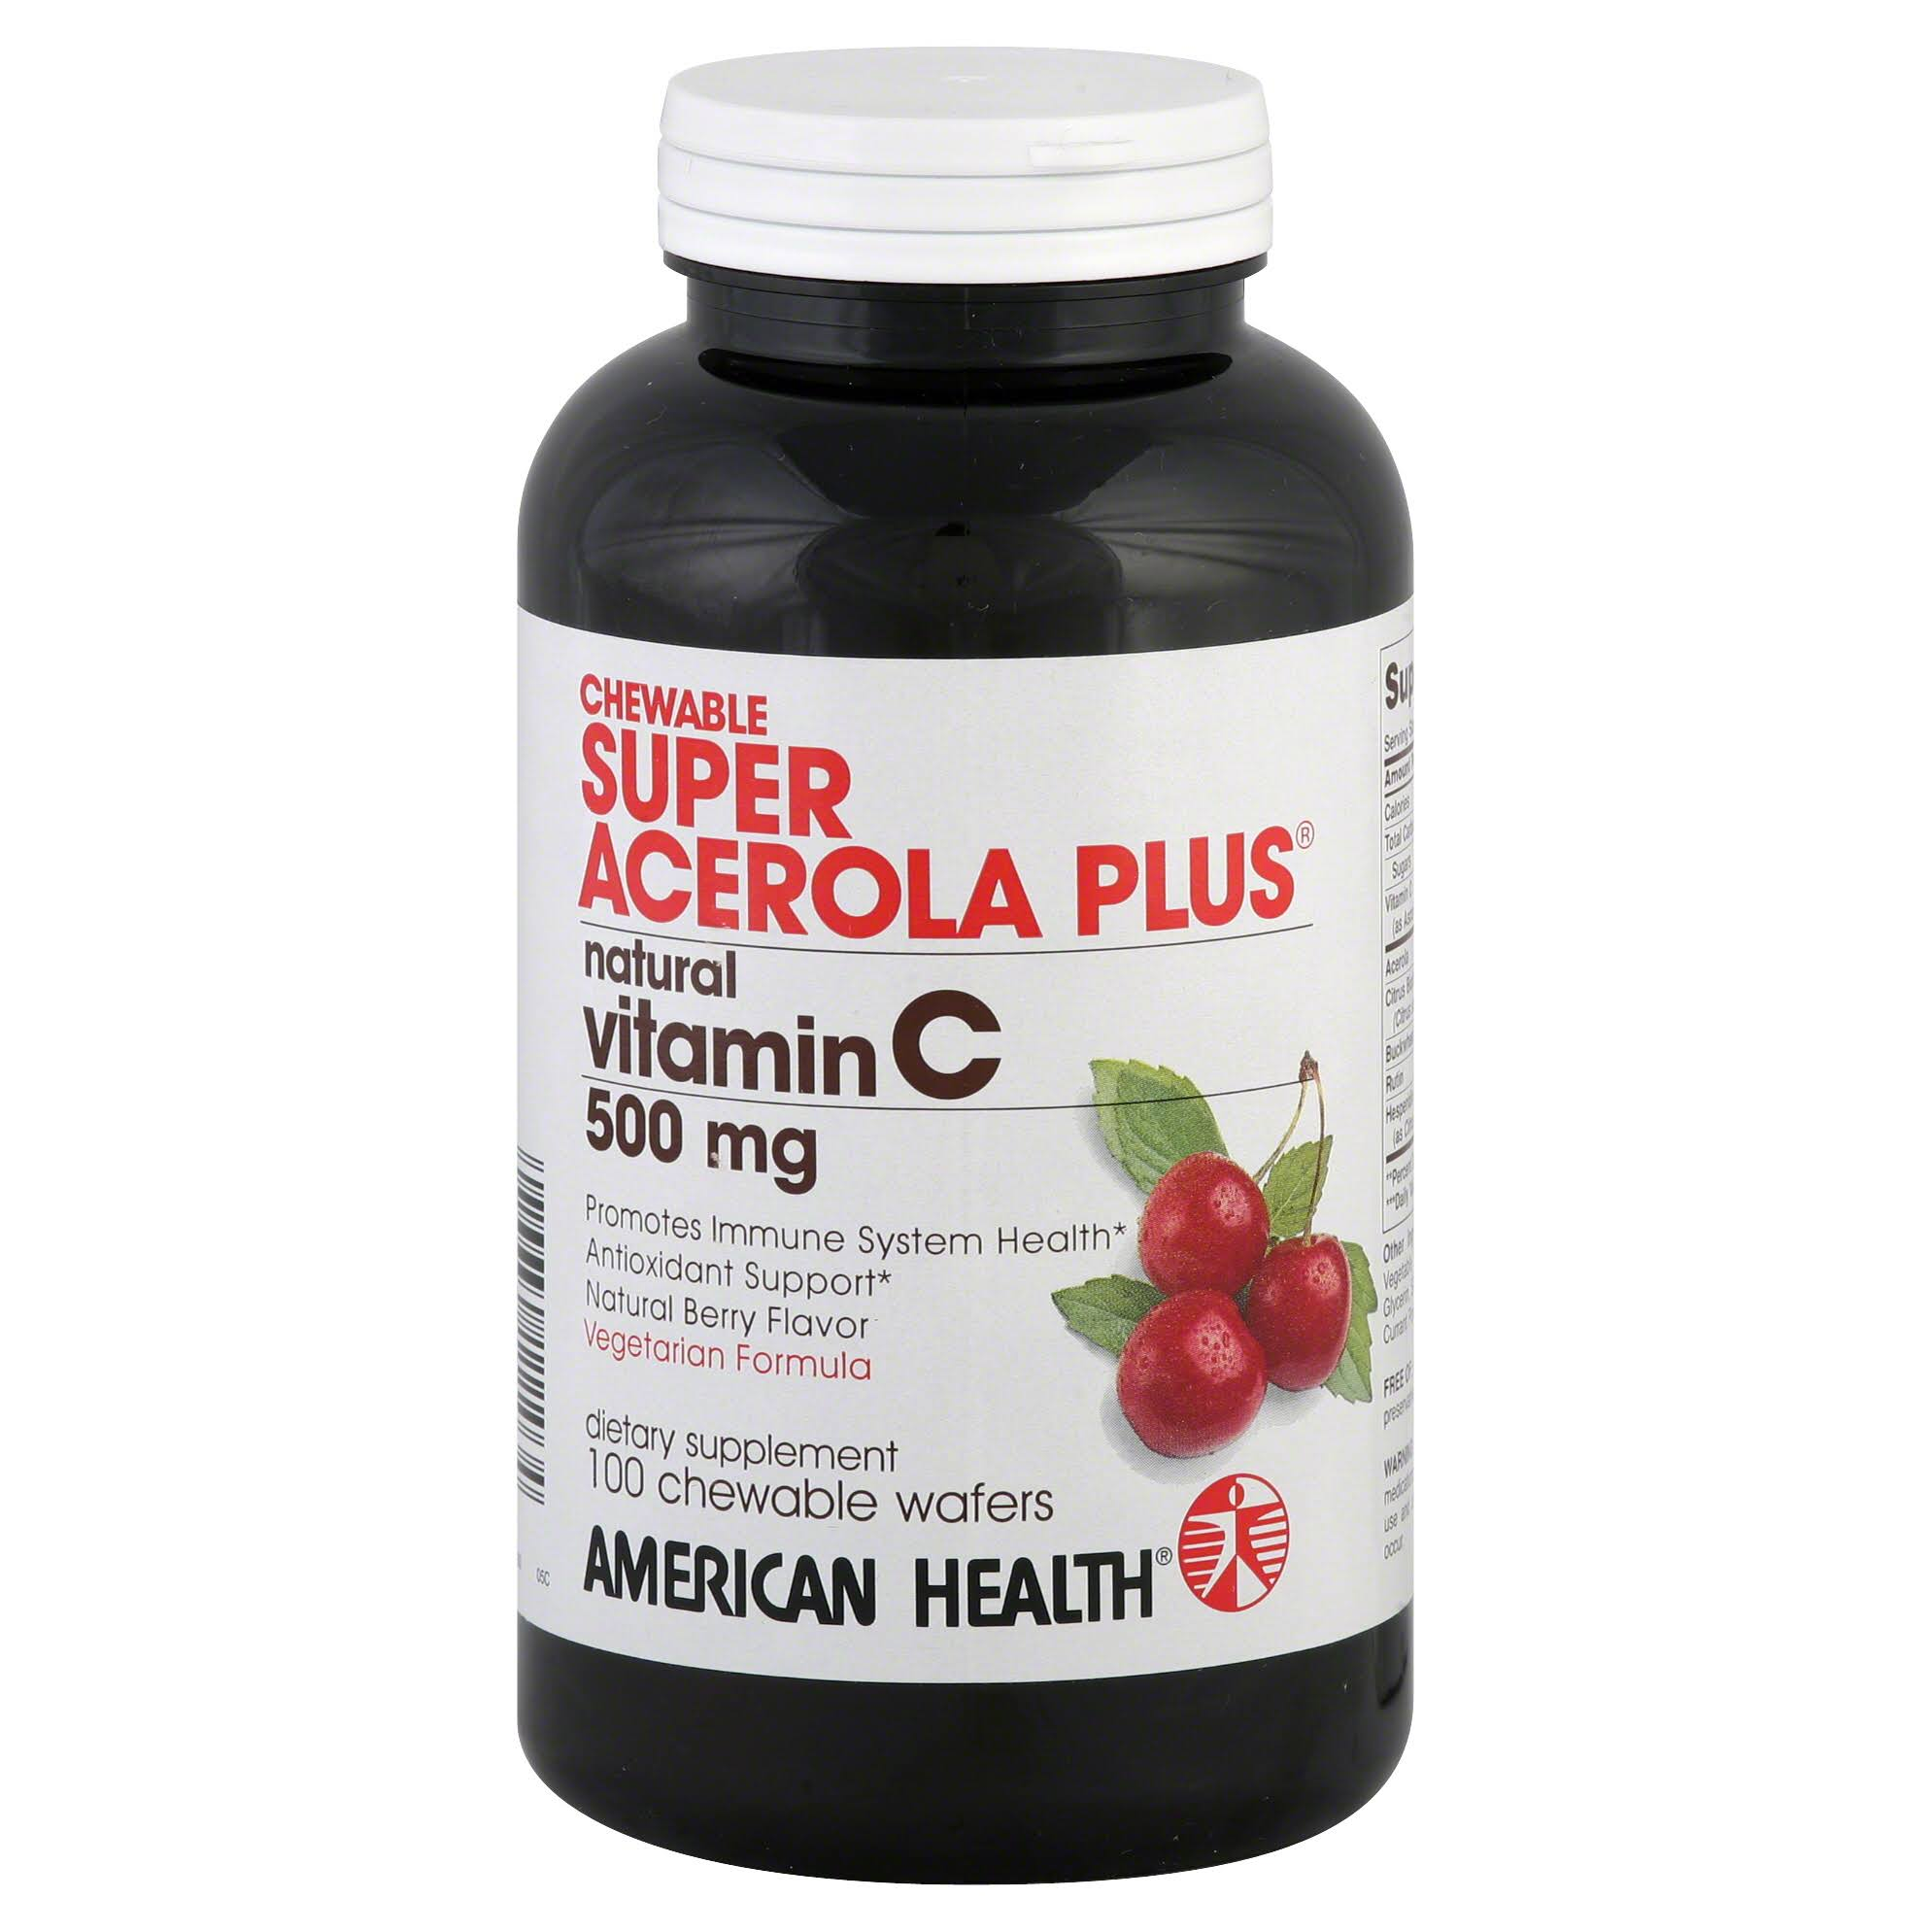 American Health Super Acerola 500mg Plus Chewable Wafers - 100 Wafers